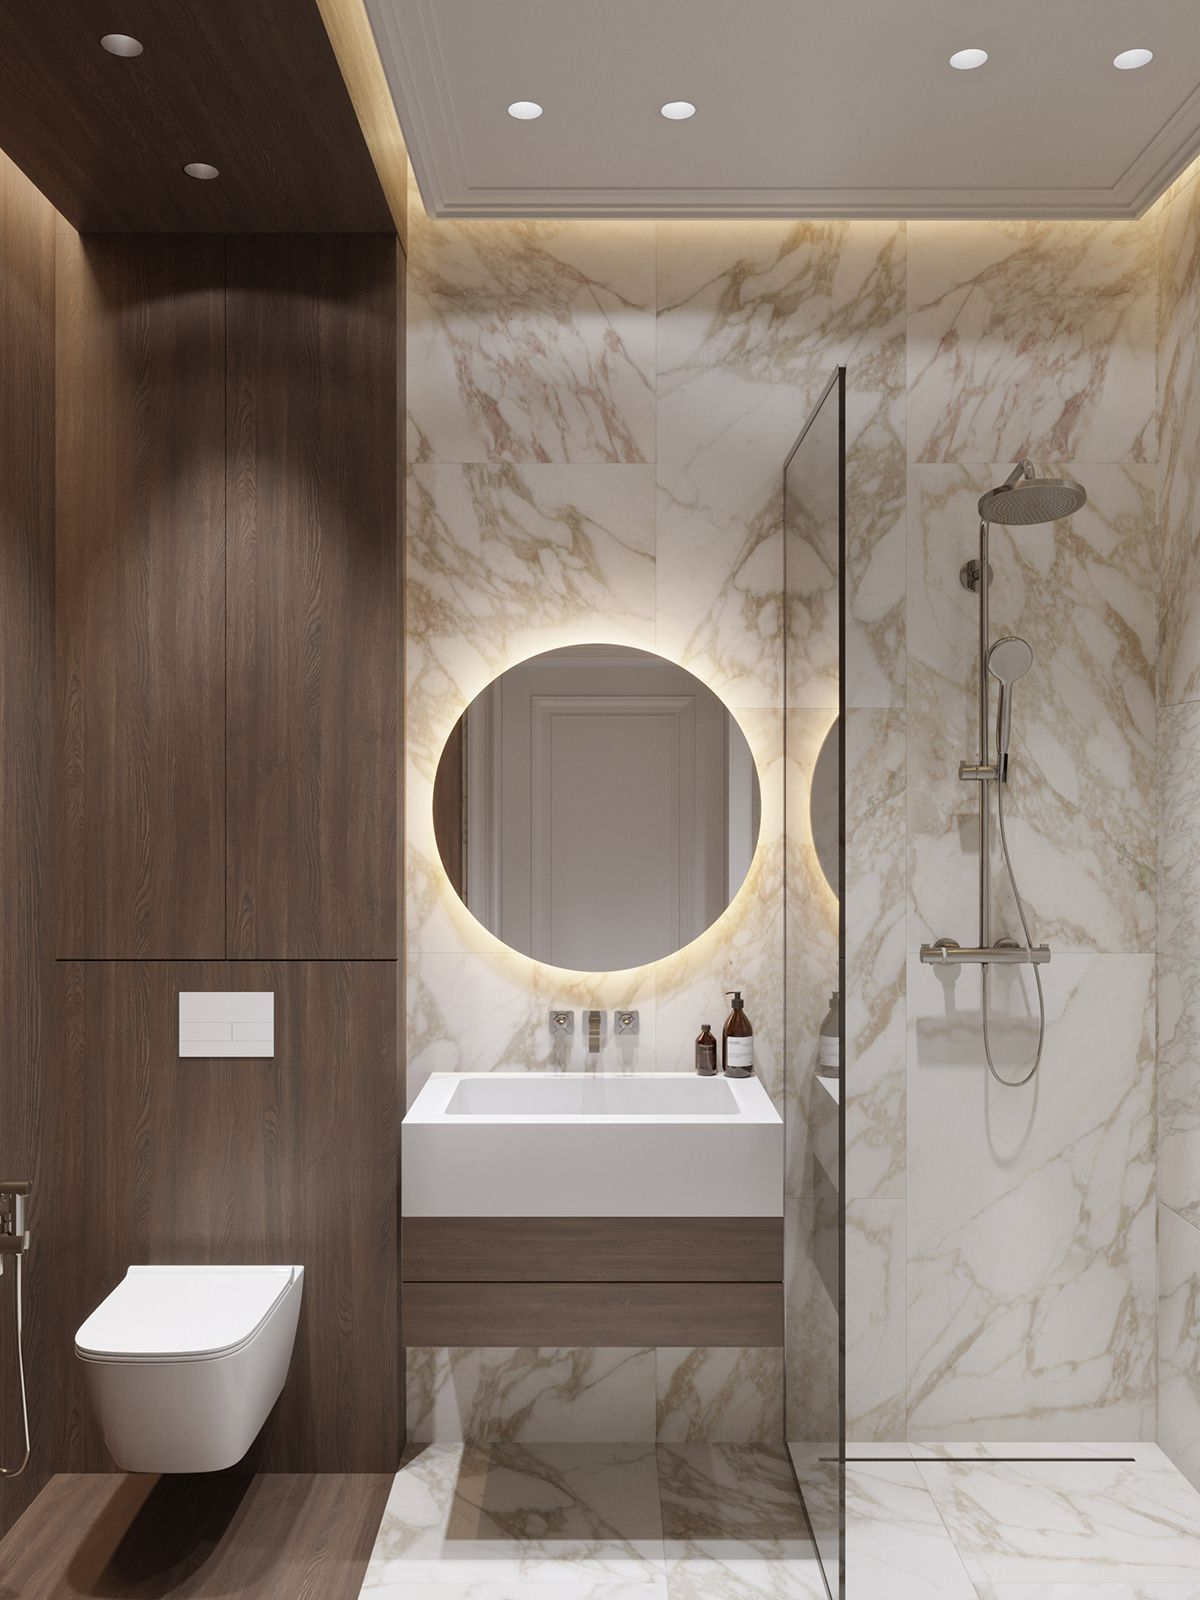 Rublevka Project In 2020 Minimalist Bathroom Design Bathroom Design Bathroom Design Decor